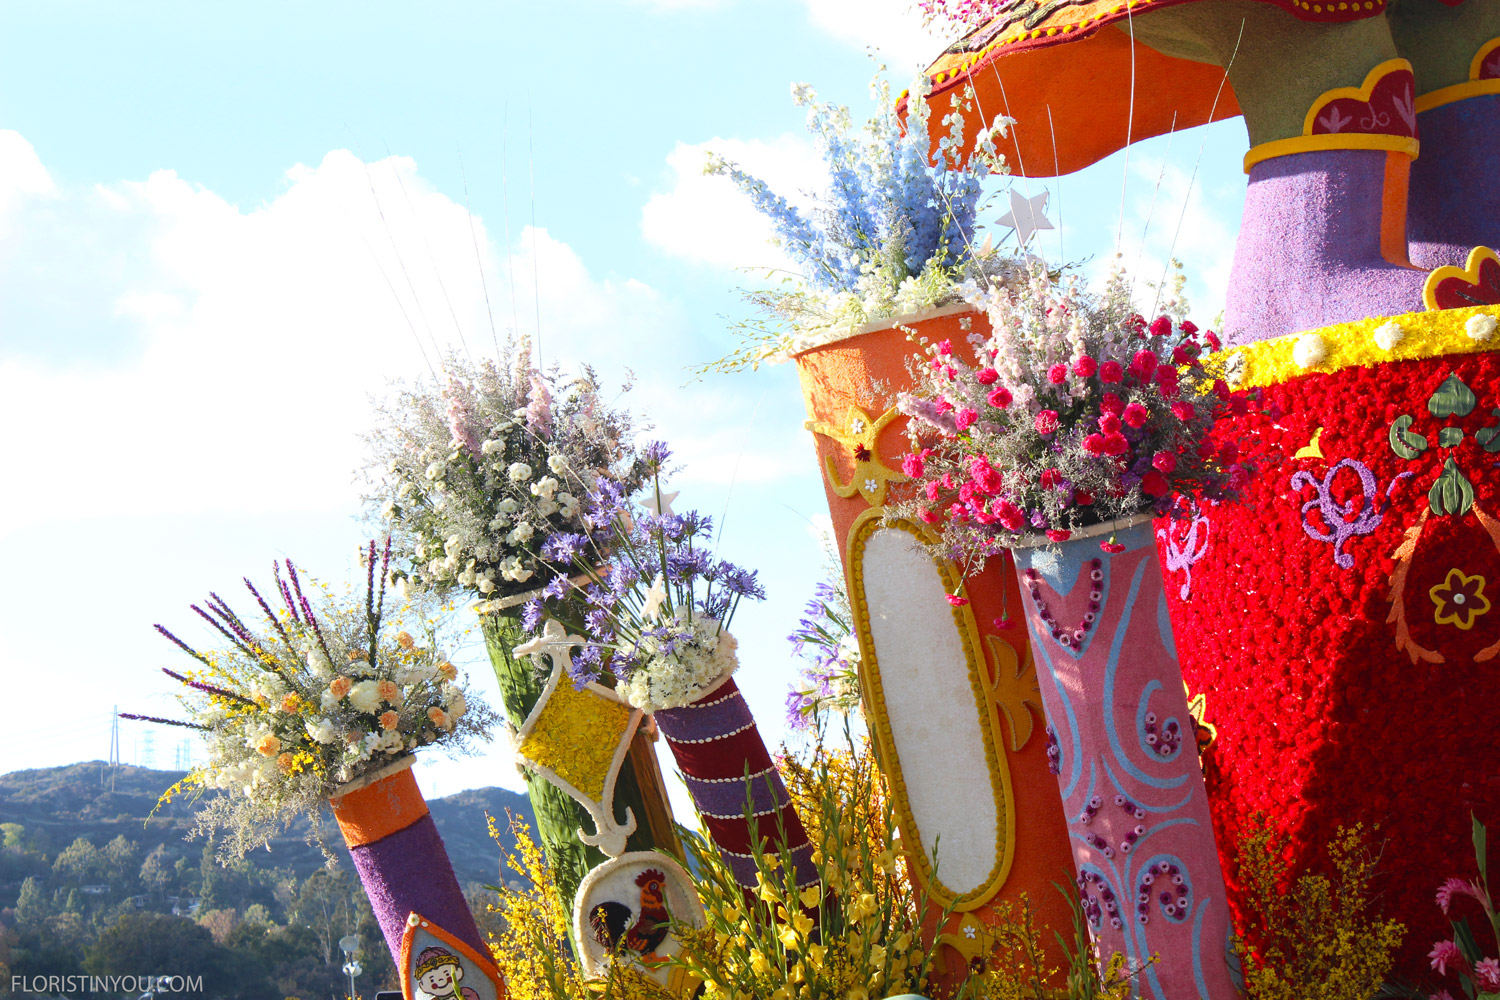 Taiwan…the flowers, colors and costumes and face painting were amazing.